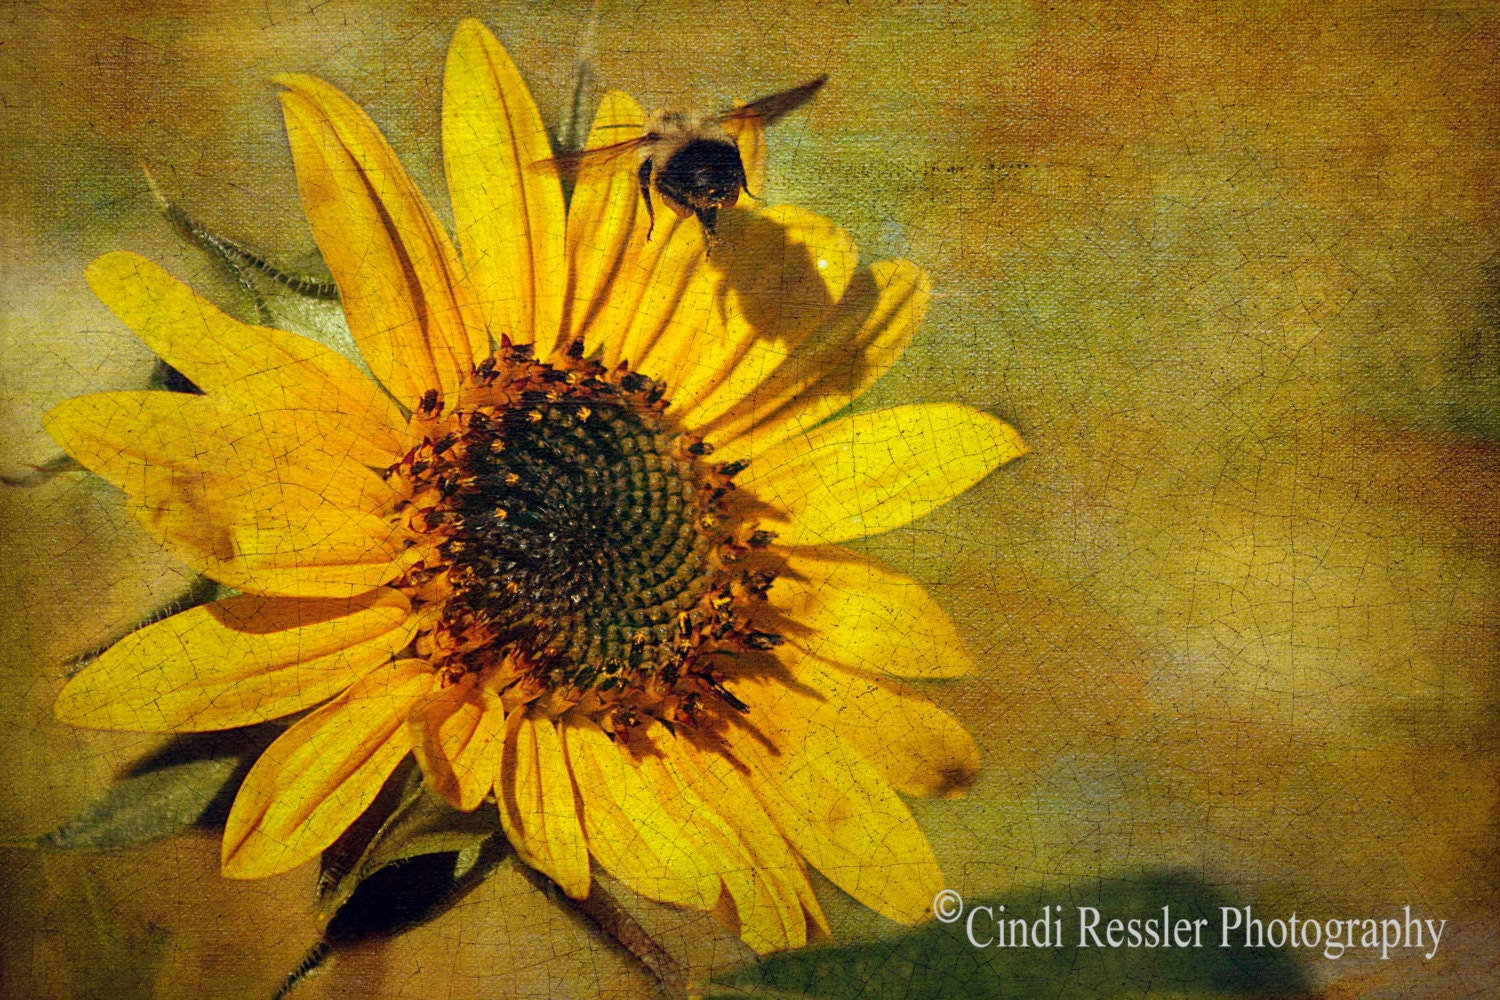 Sunflower with Bumble Bee, 5x7 Fine Art Photogrpahy, Flower Photography, Floral Photography - CindiRessler